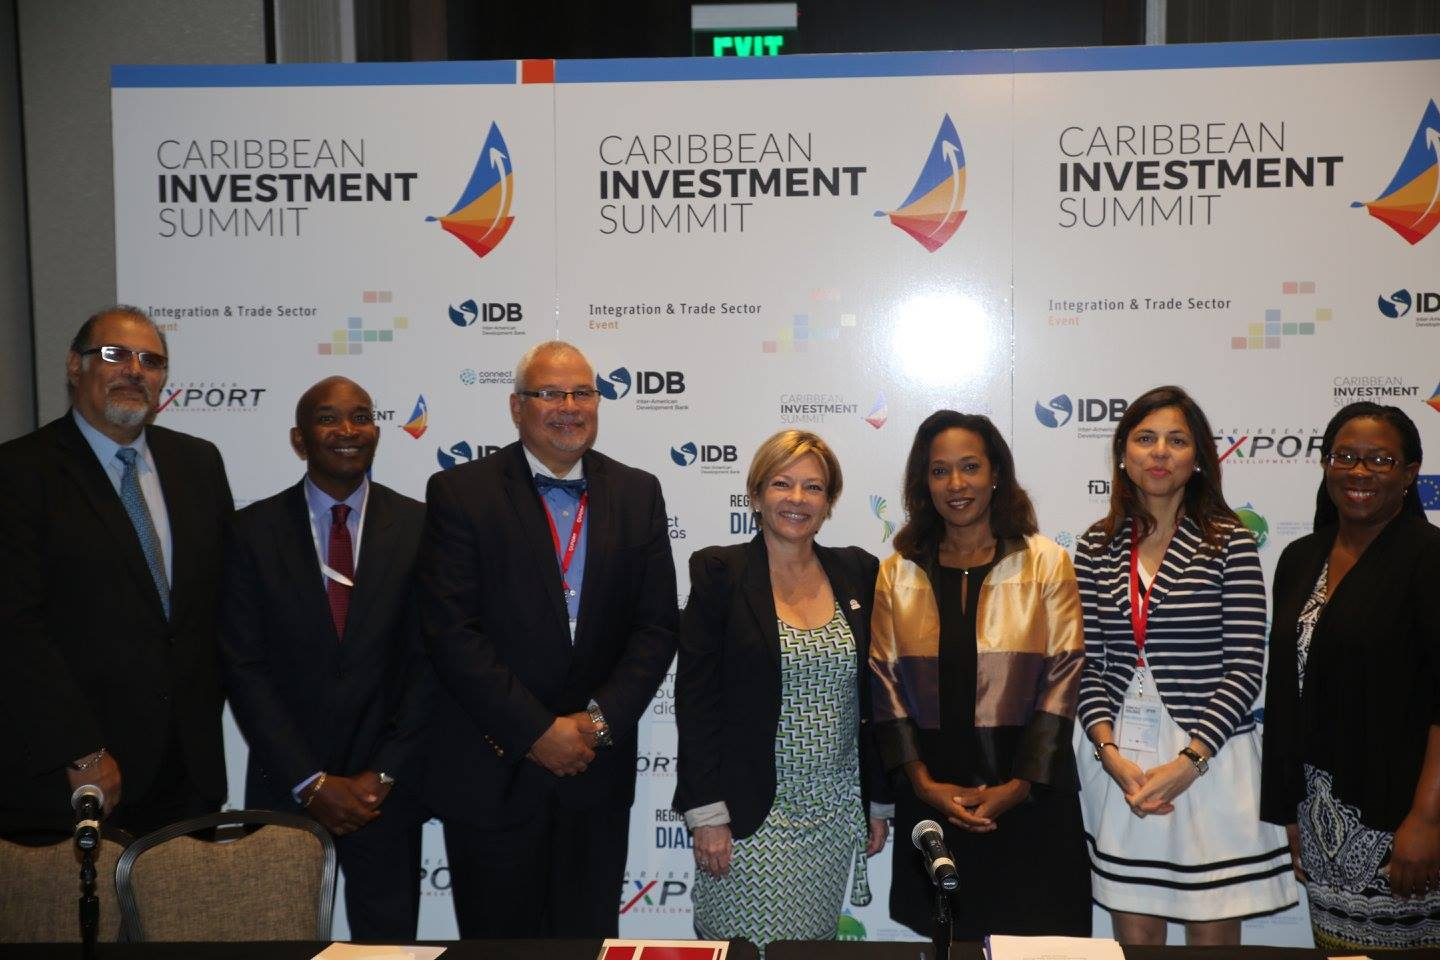 MIAMI, Fla. (FNN NEWS): Caribbean Export Development Agency and Latin Chamber of Commerce (CAMACOL) Sign MOU to increase investment in the Caribbean. Photo: Mellissa Thomas/Florida National News.